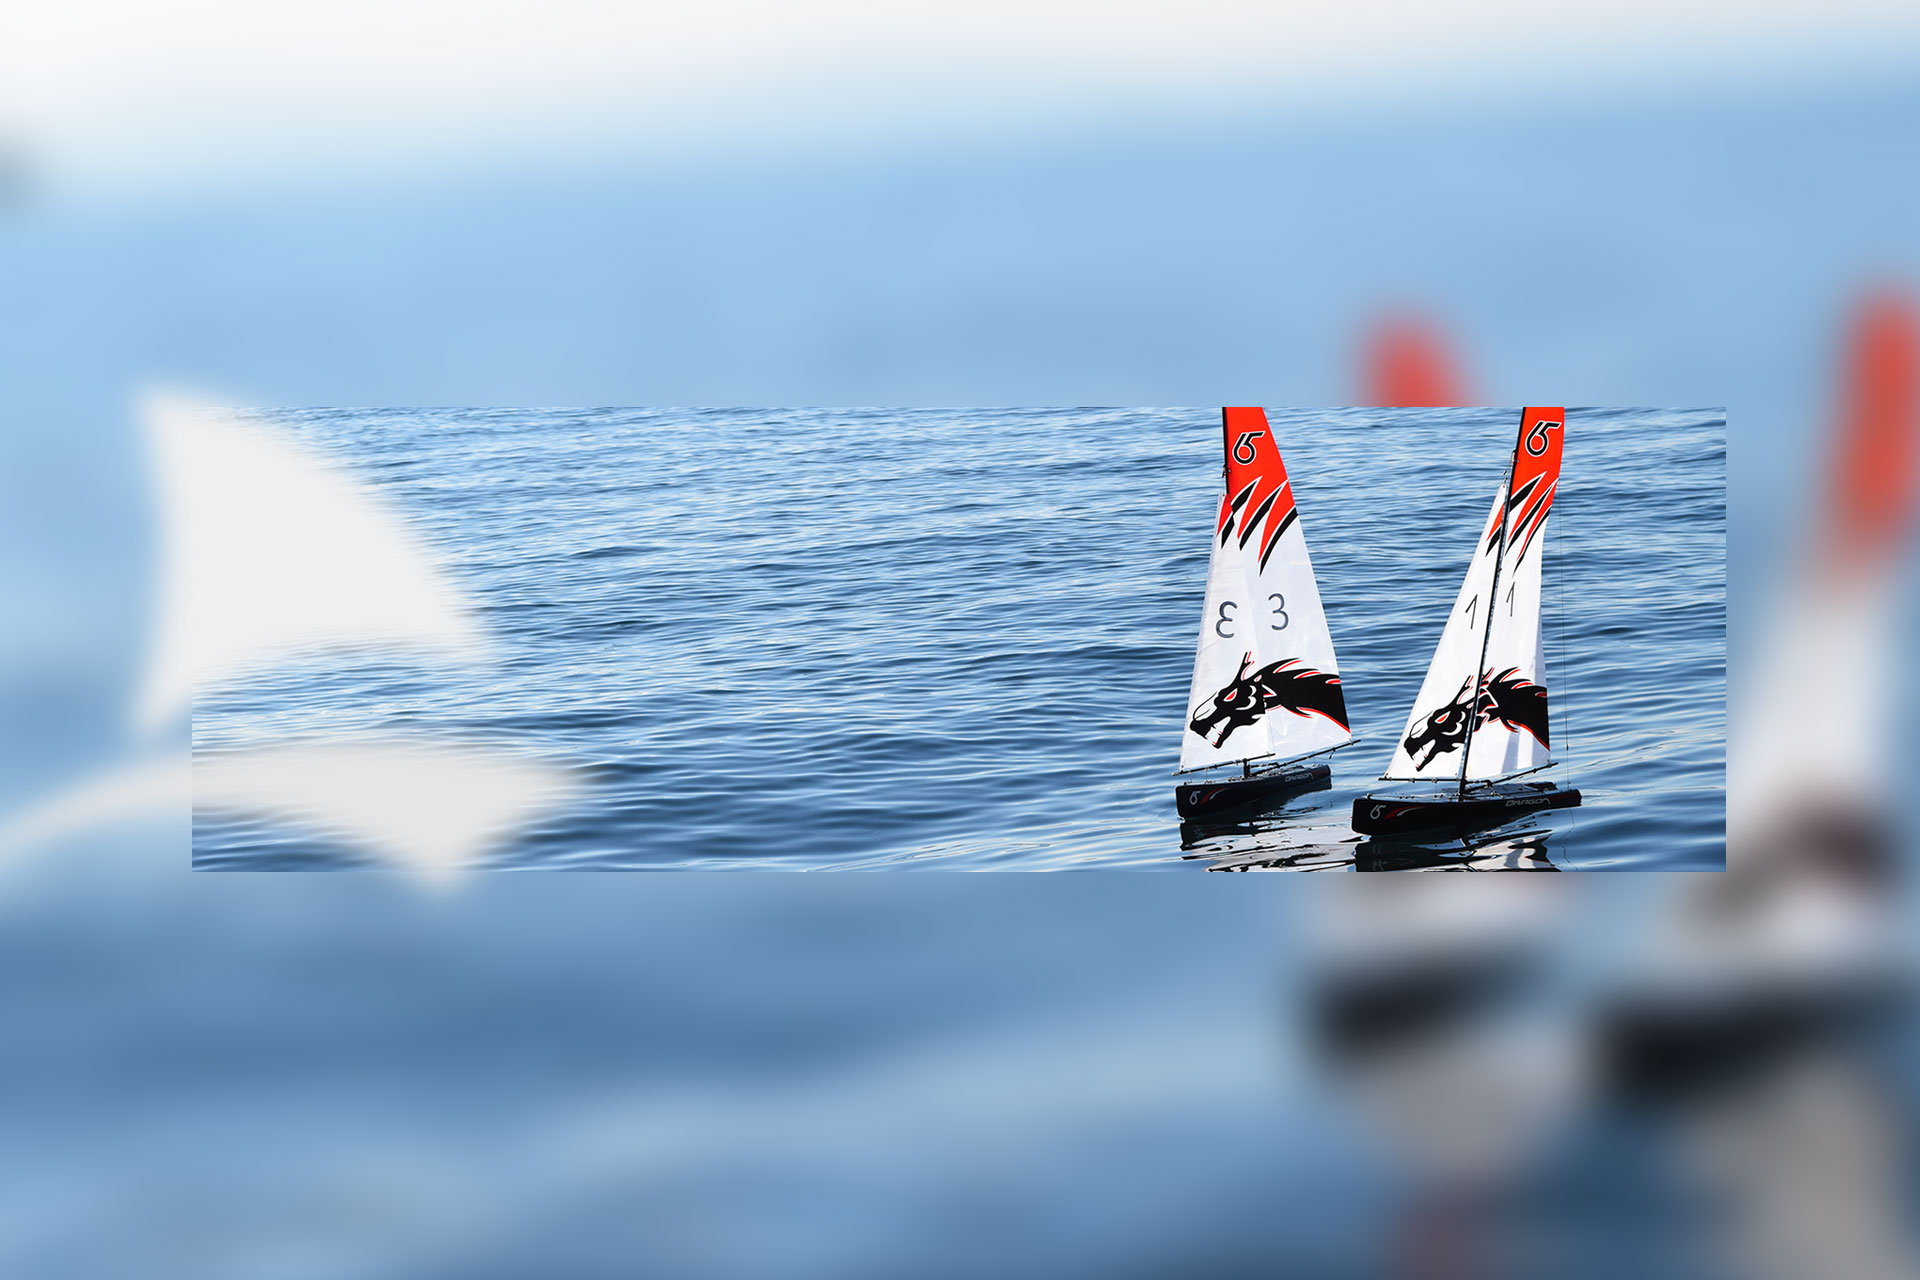 DF65 RC yacht RC sailboat main image product